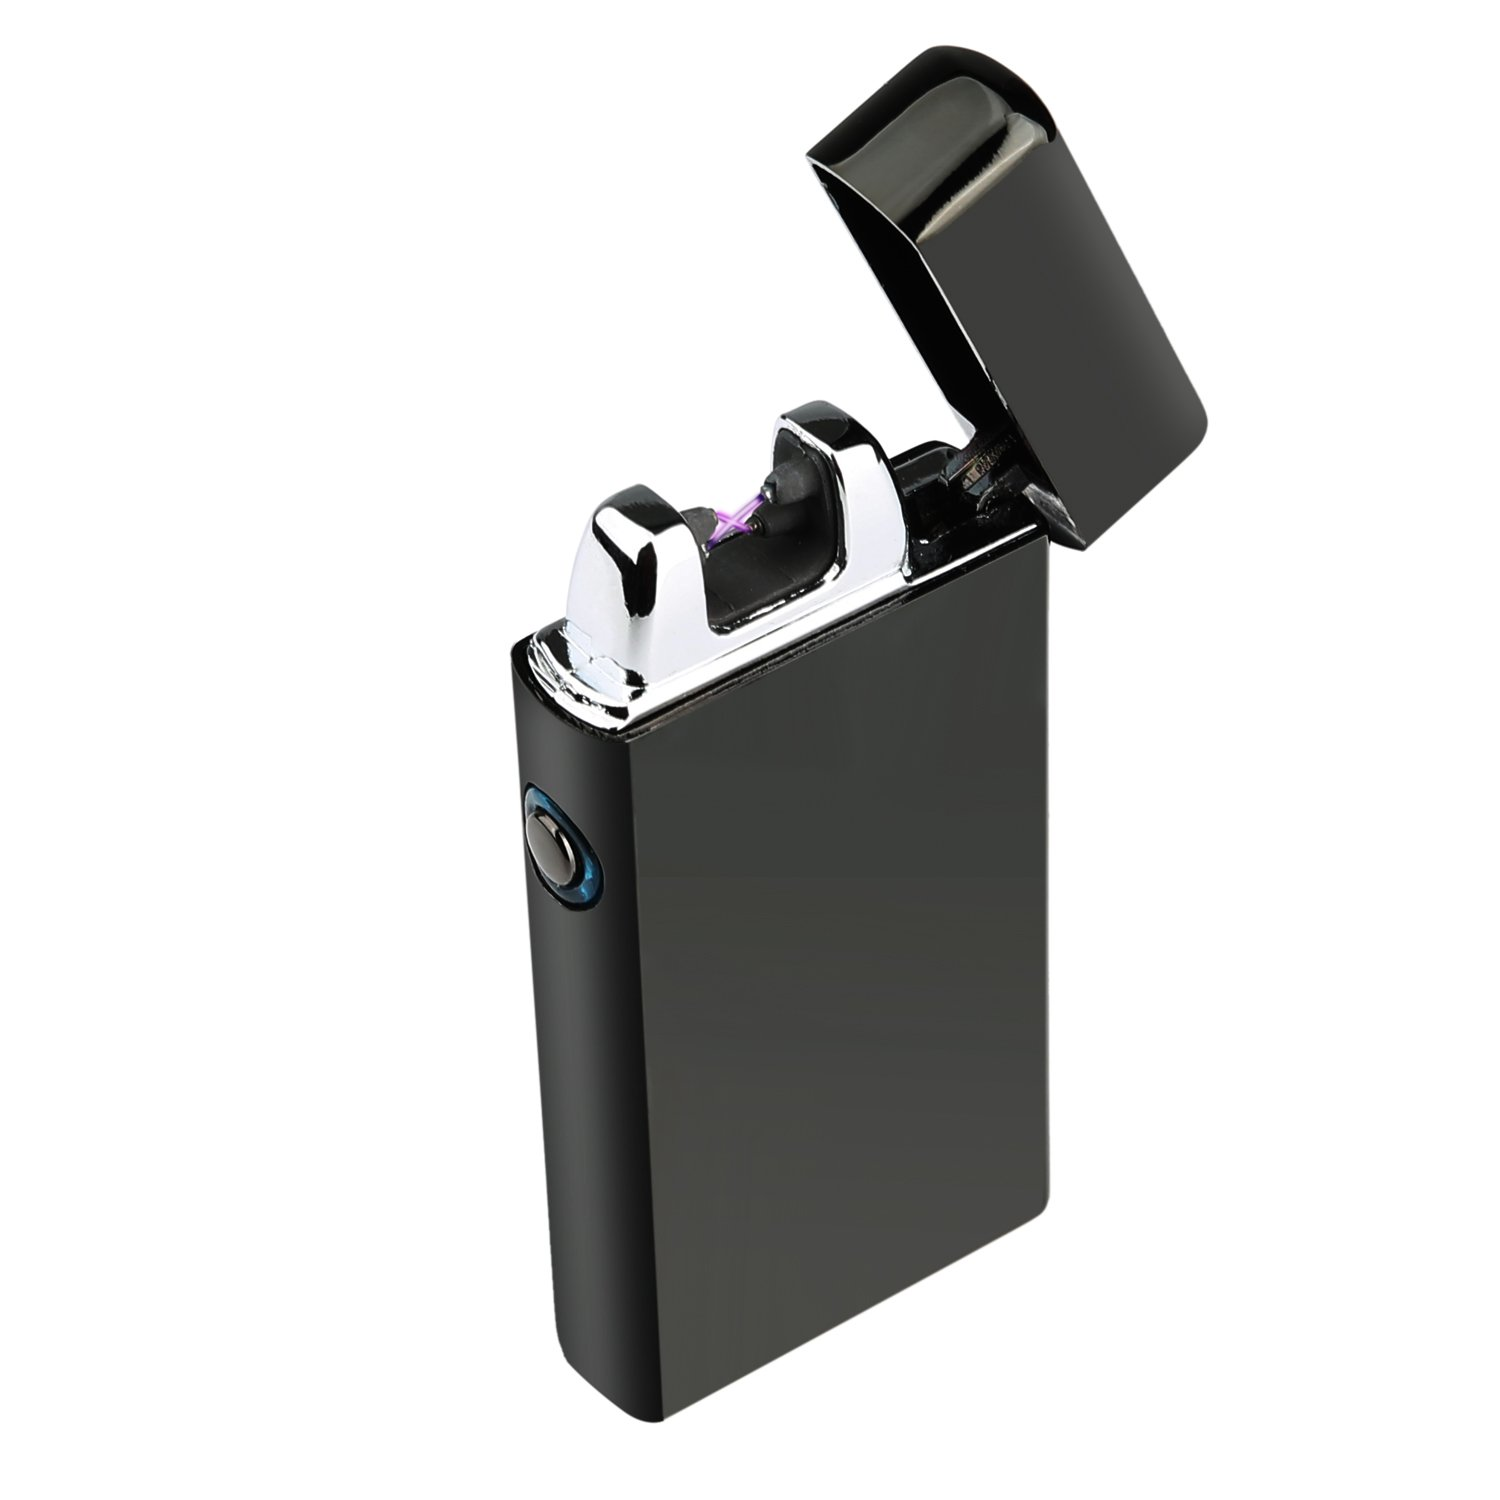 Ruiwo Tesla Coil Lighters Metal Rechargeable Windproof Flameless Electric Dual Arc USB Lighter (Black) by Ruiwo (Image #1)